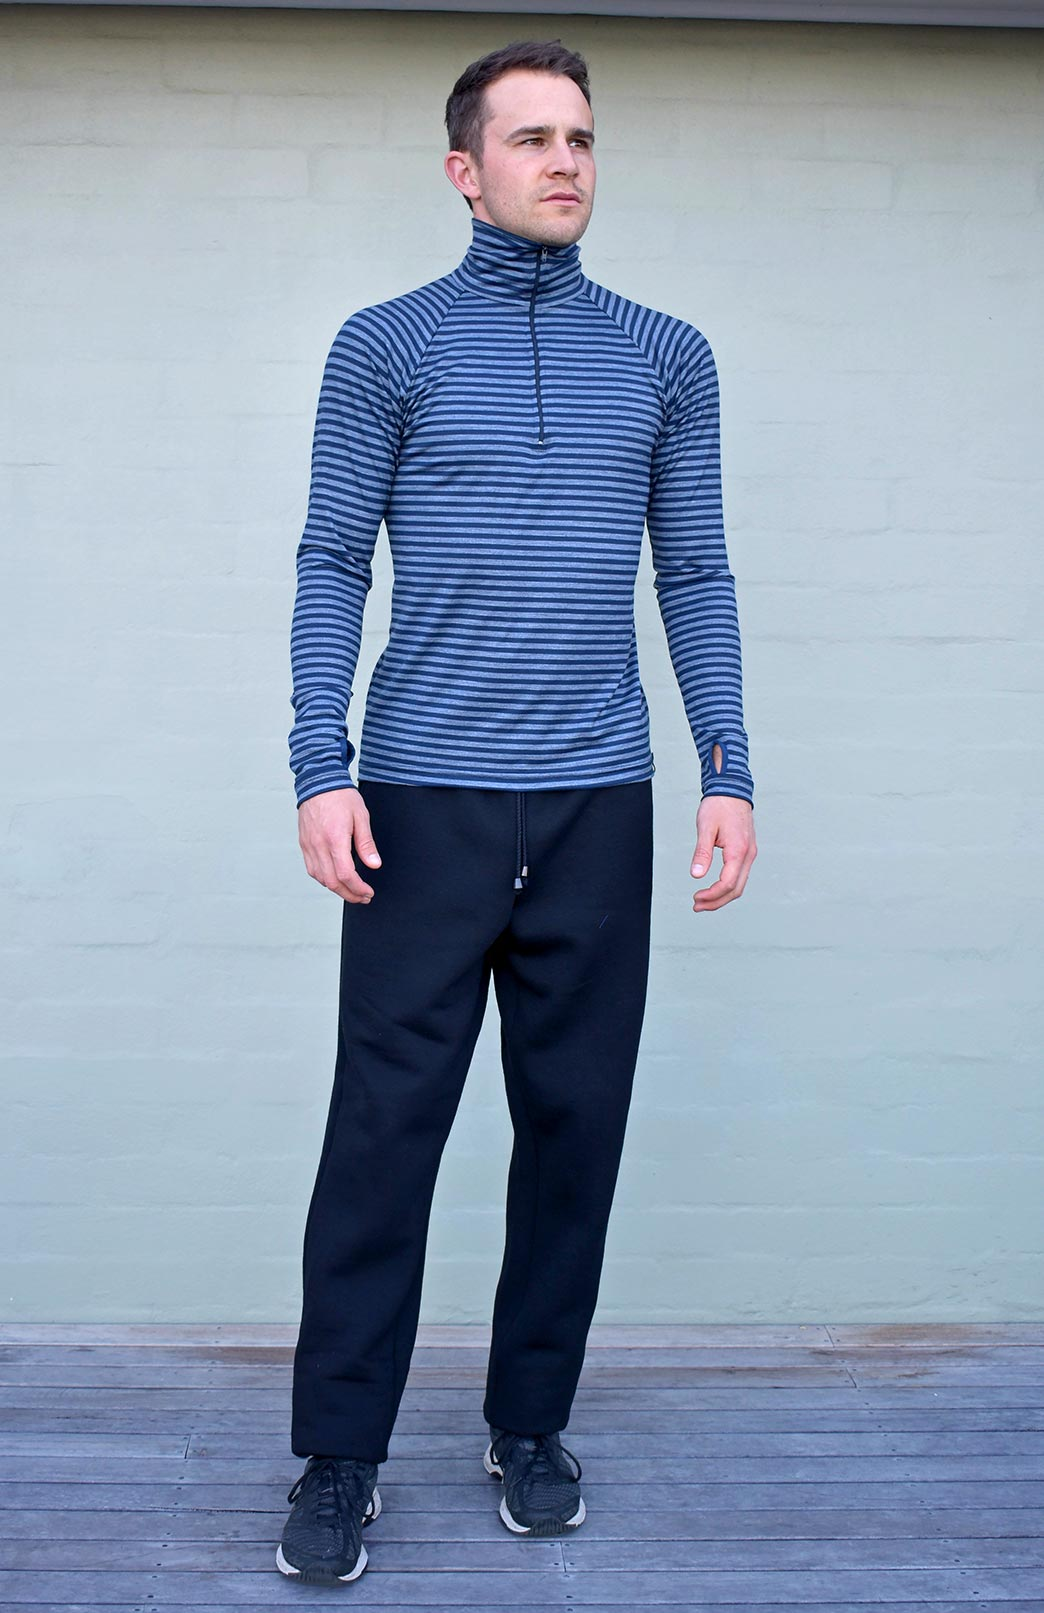 Zip Neck Top - Mid-Weight (~220g) - Men's Indigo Blue & Grey Stripe Mid-Weight Merino Wool Long Sleeved Zip Neck Top with Thumb Holes for Layering with Thermals - Smitten Merino Tasmania Australia